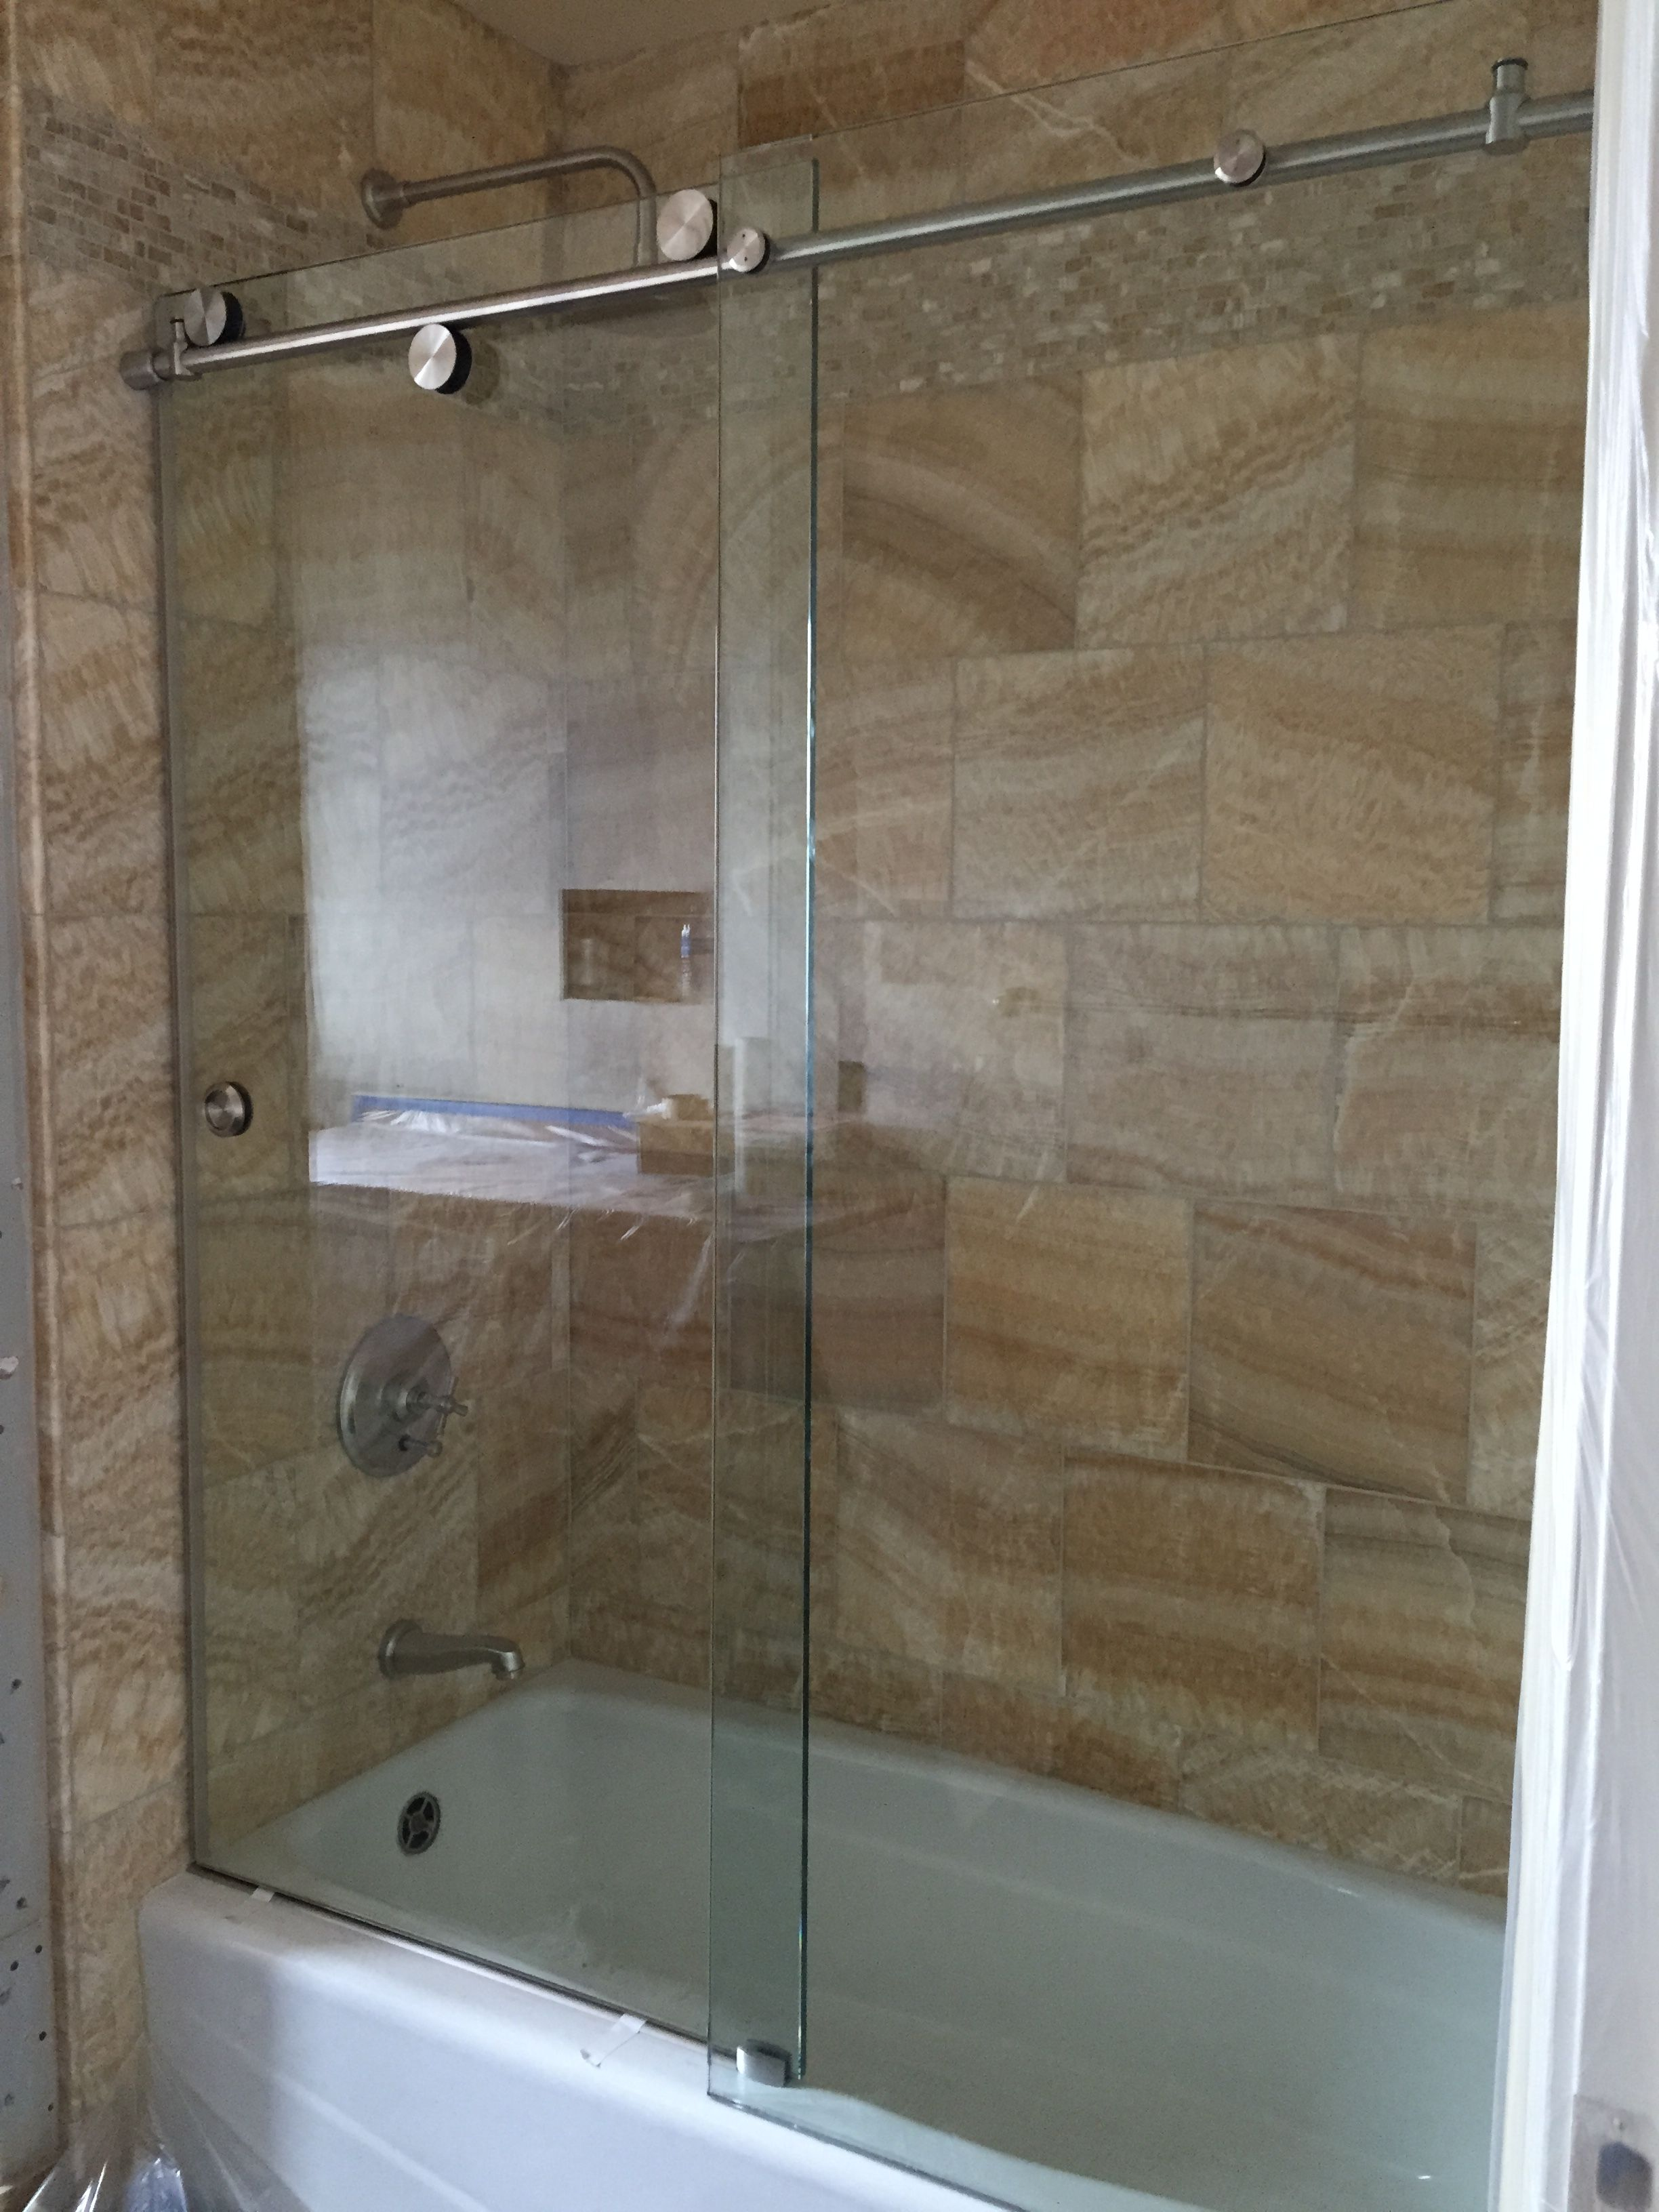 Cardinal Skyline Series Enclosure 1 2 Clear Tempered Glass With Brushed Stainless Hardware Glass Tub Shower Doors Tub Enclosures